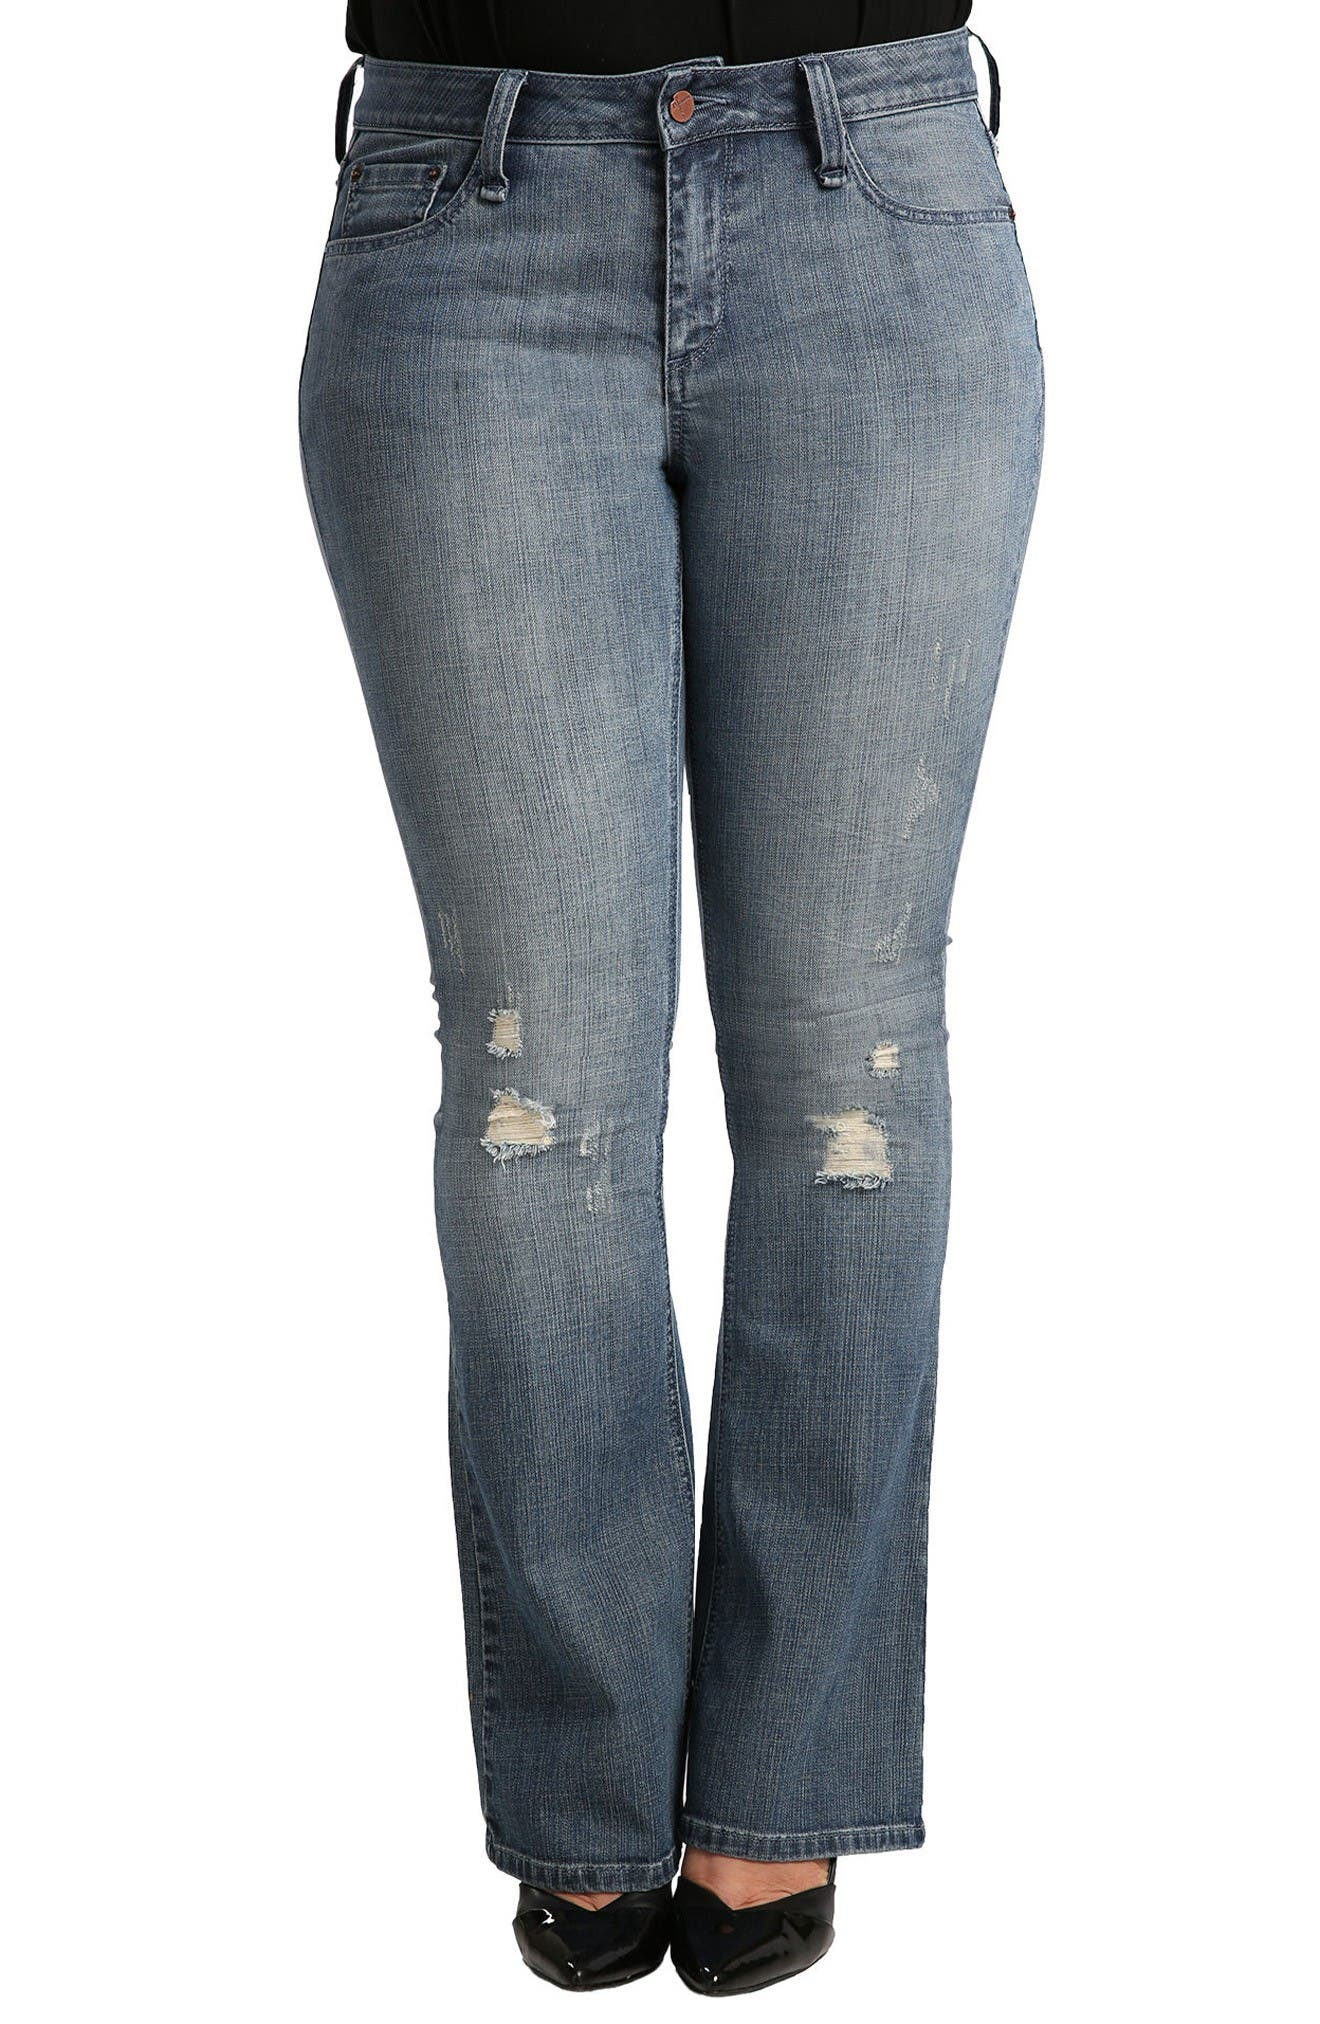 Clarice Uptown Mid Rise Bootcut Jeans,                             Main thumbnail 1, color,                             1054Boytoy